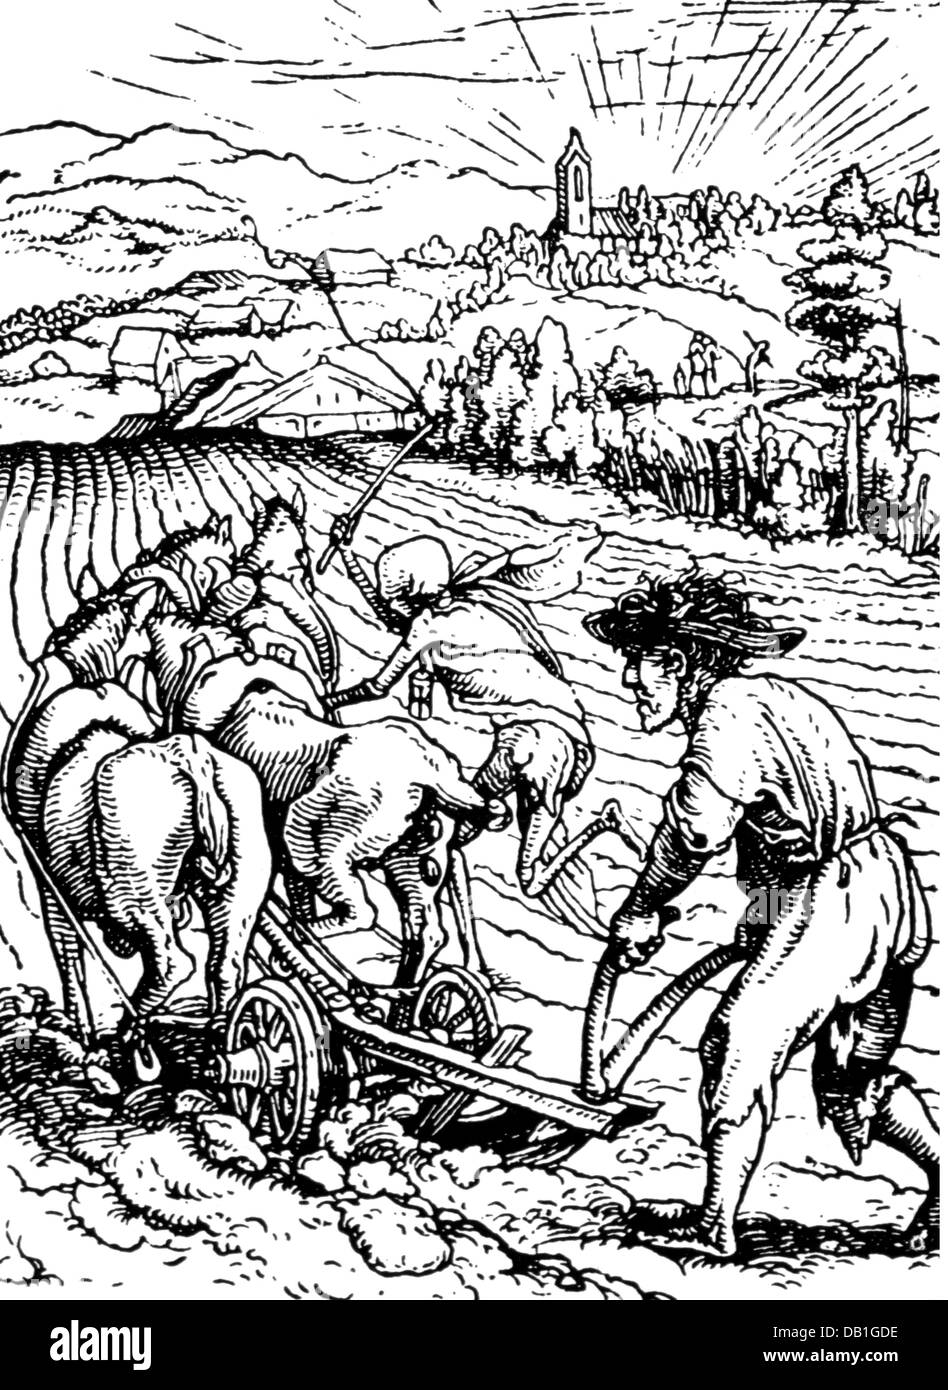 Agriculture, Agricultural Work, Plowing, The Farmer And